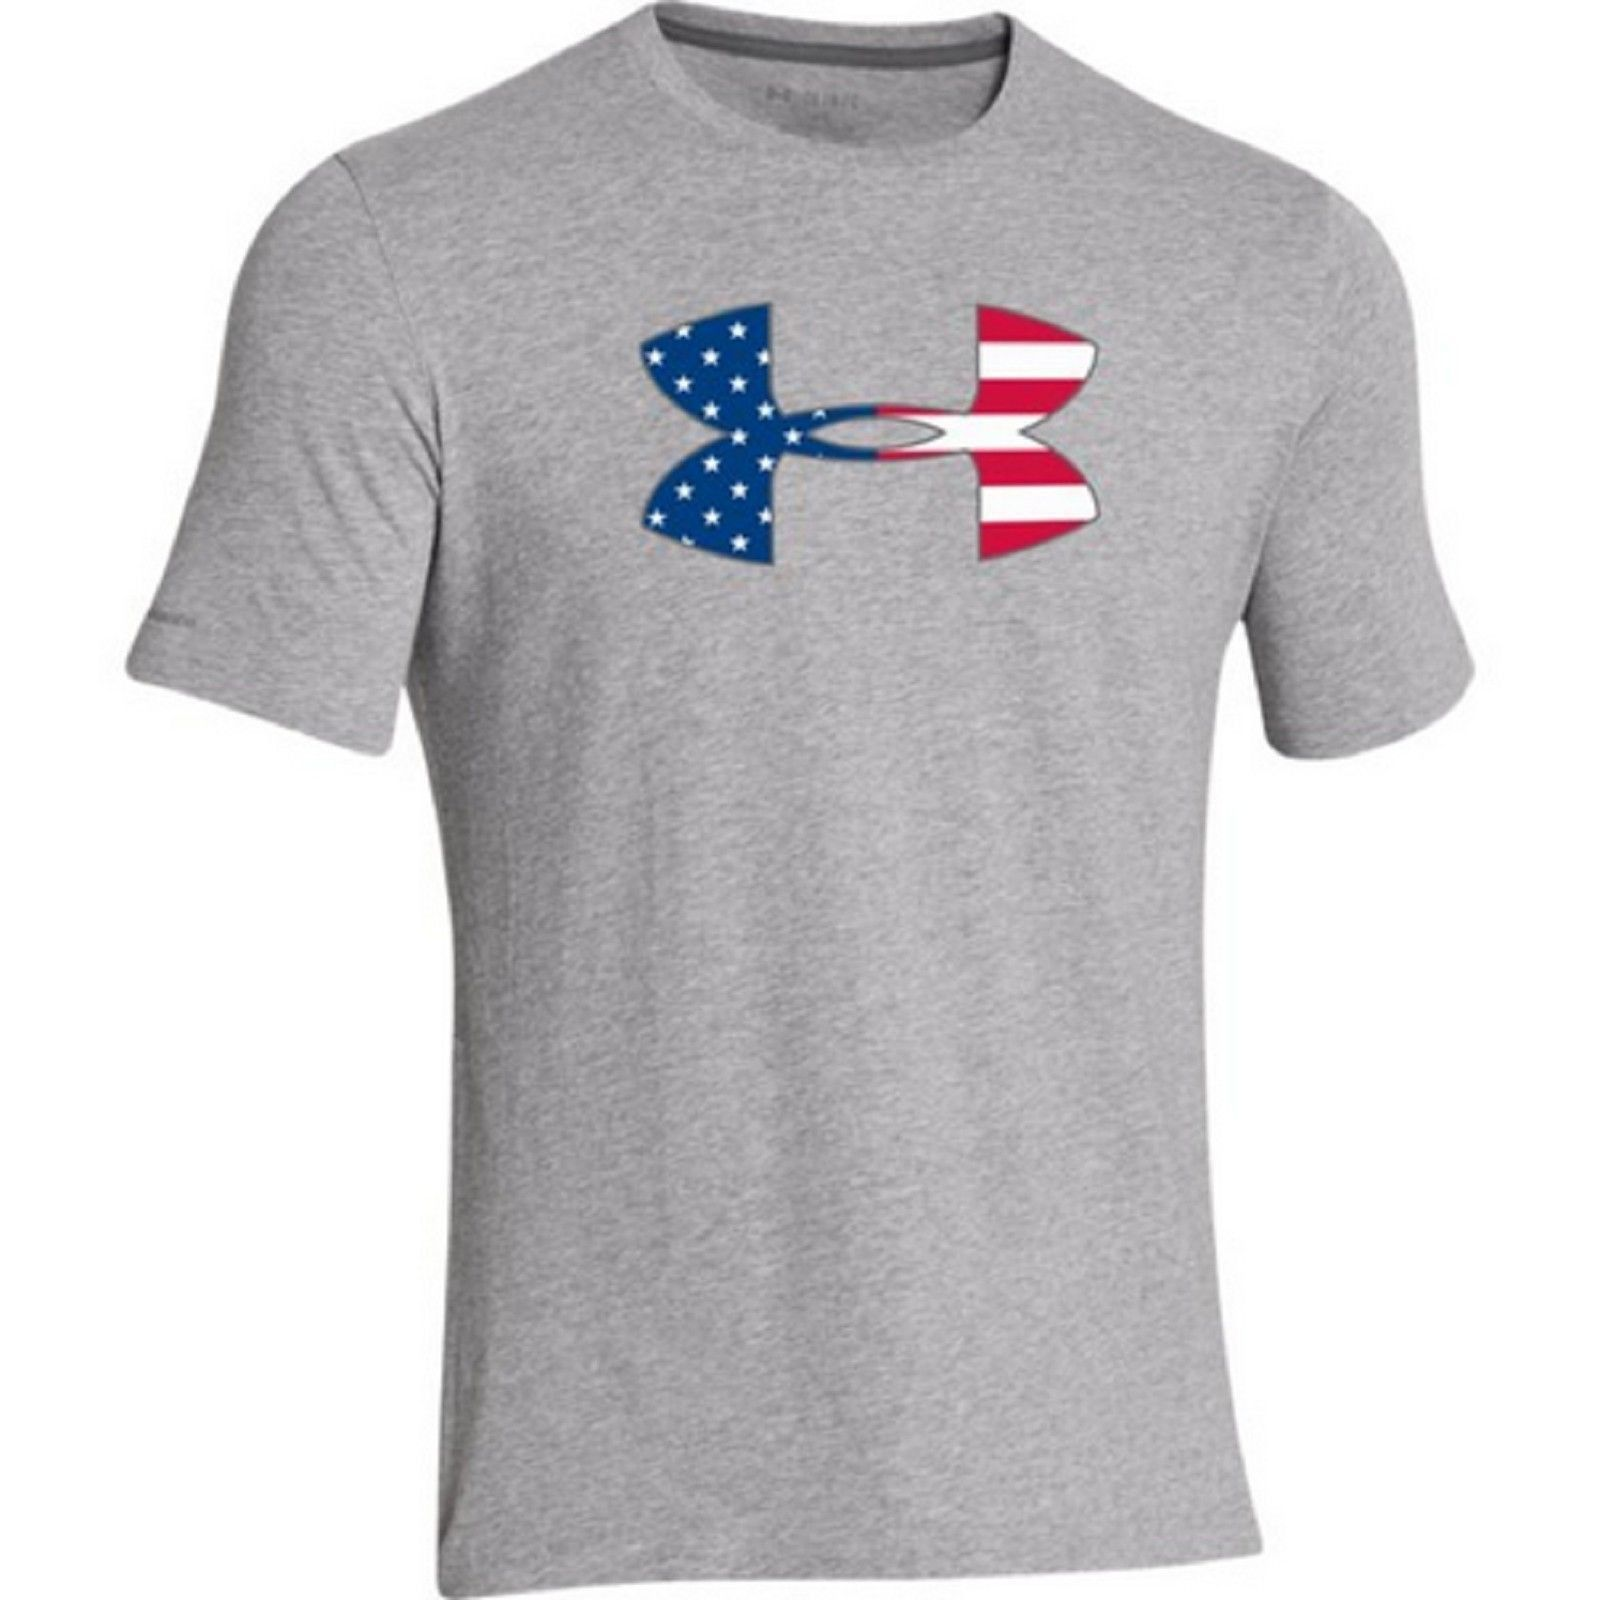 Under Armour USA Flag UA Logo T-Shirt - Men's Patriotic American Flag Tee  Shirt